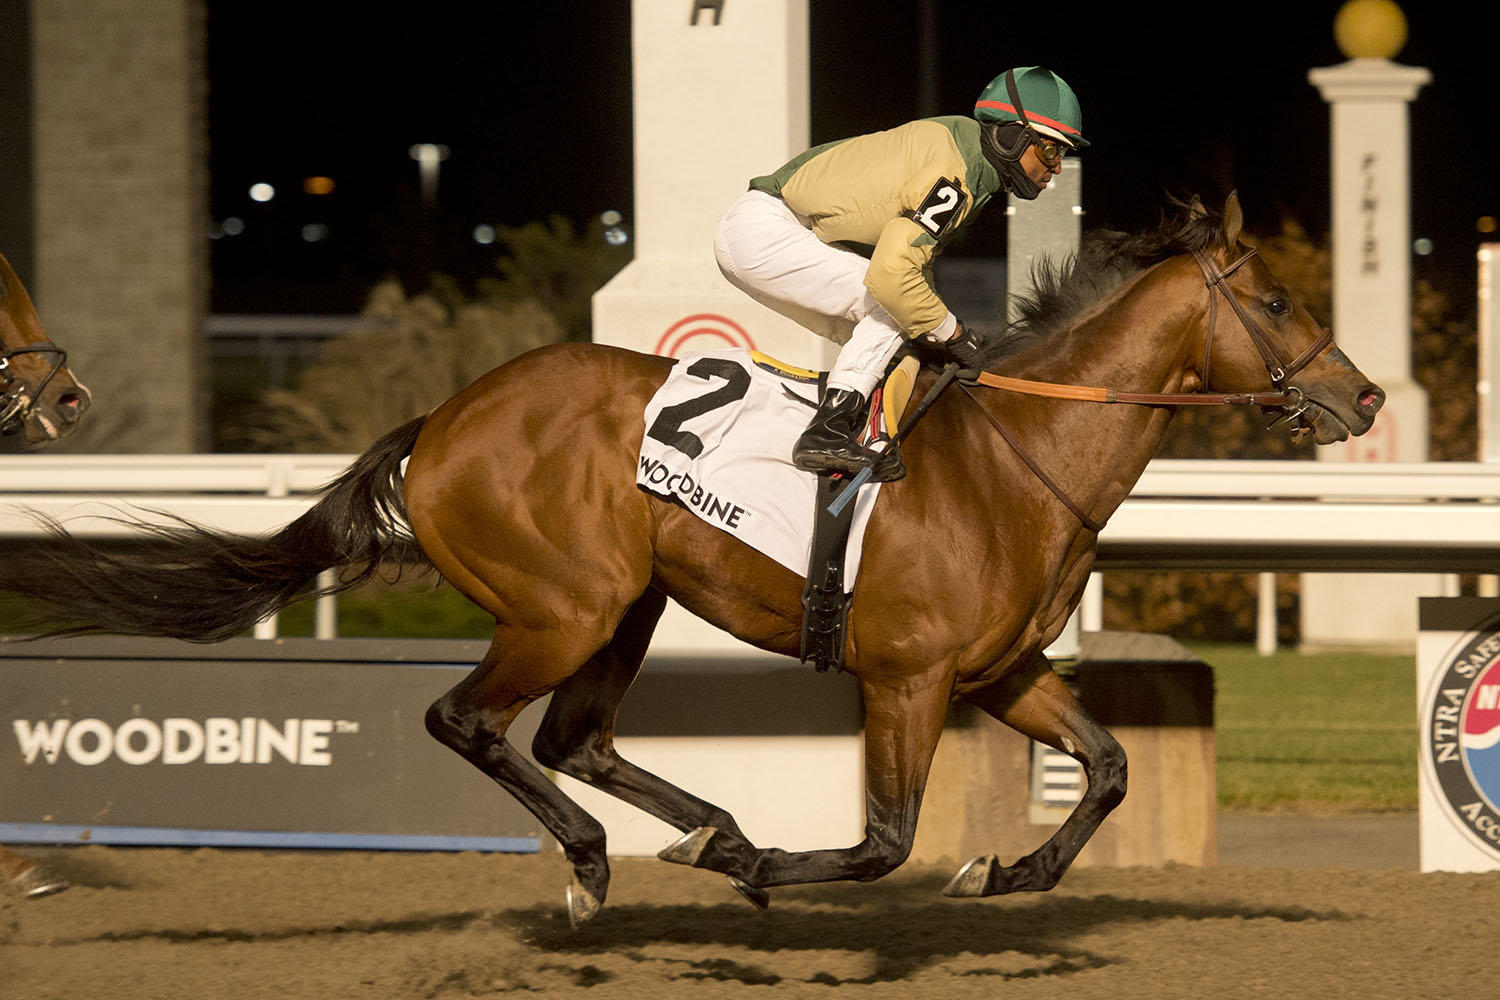 Ride a Comet and jockey Patrick Husbands winning the $175,000 Kennedy Road Stakes (Grade 2) on Saturday, Nov. 21 at Woodbine Racetrack. (Michael Burns Photo)